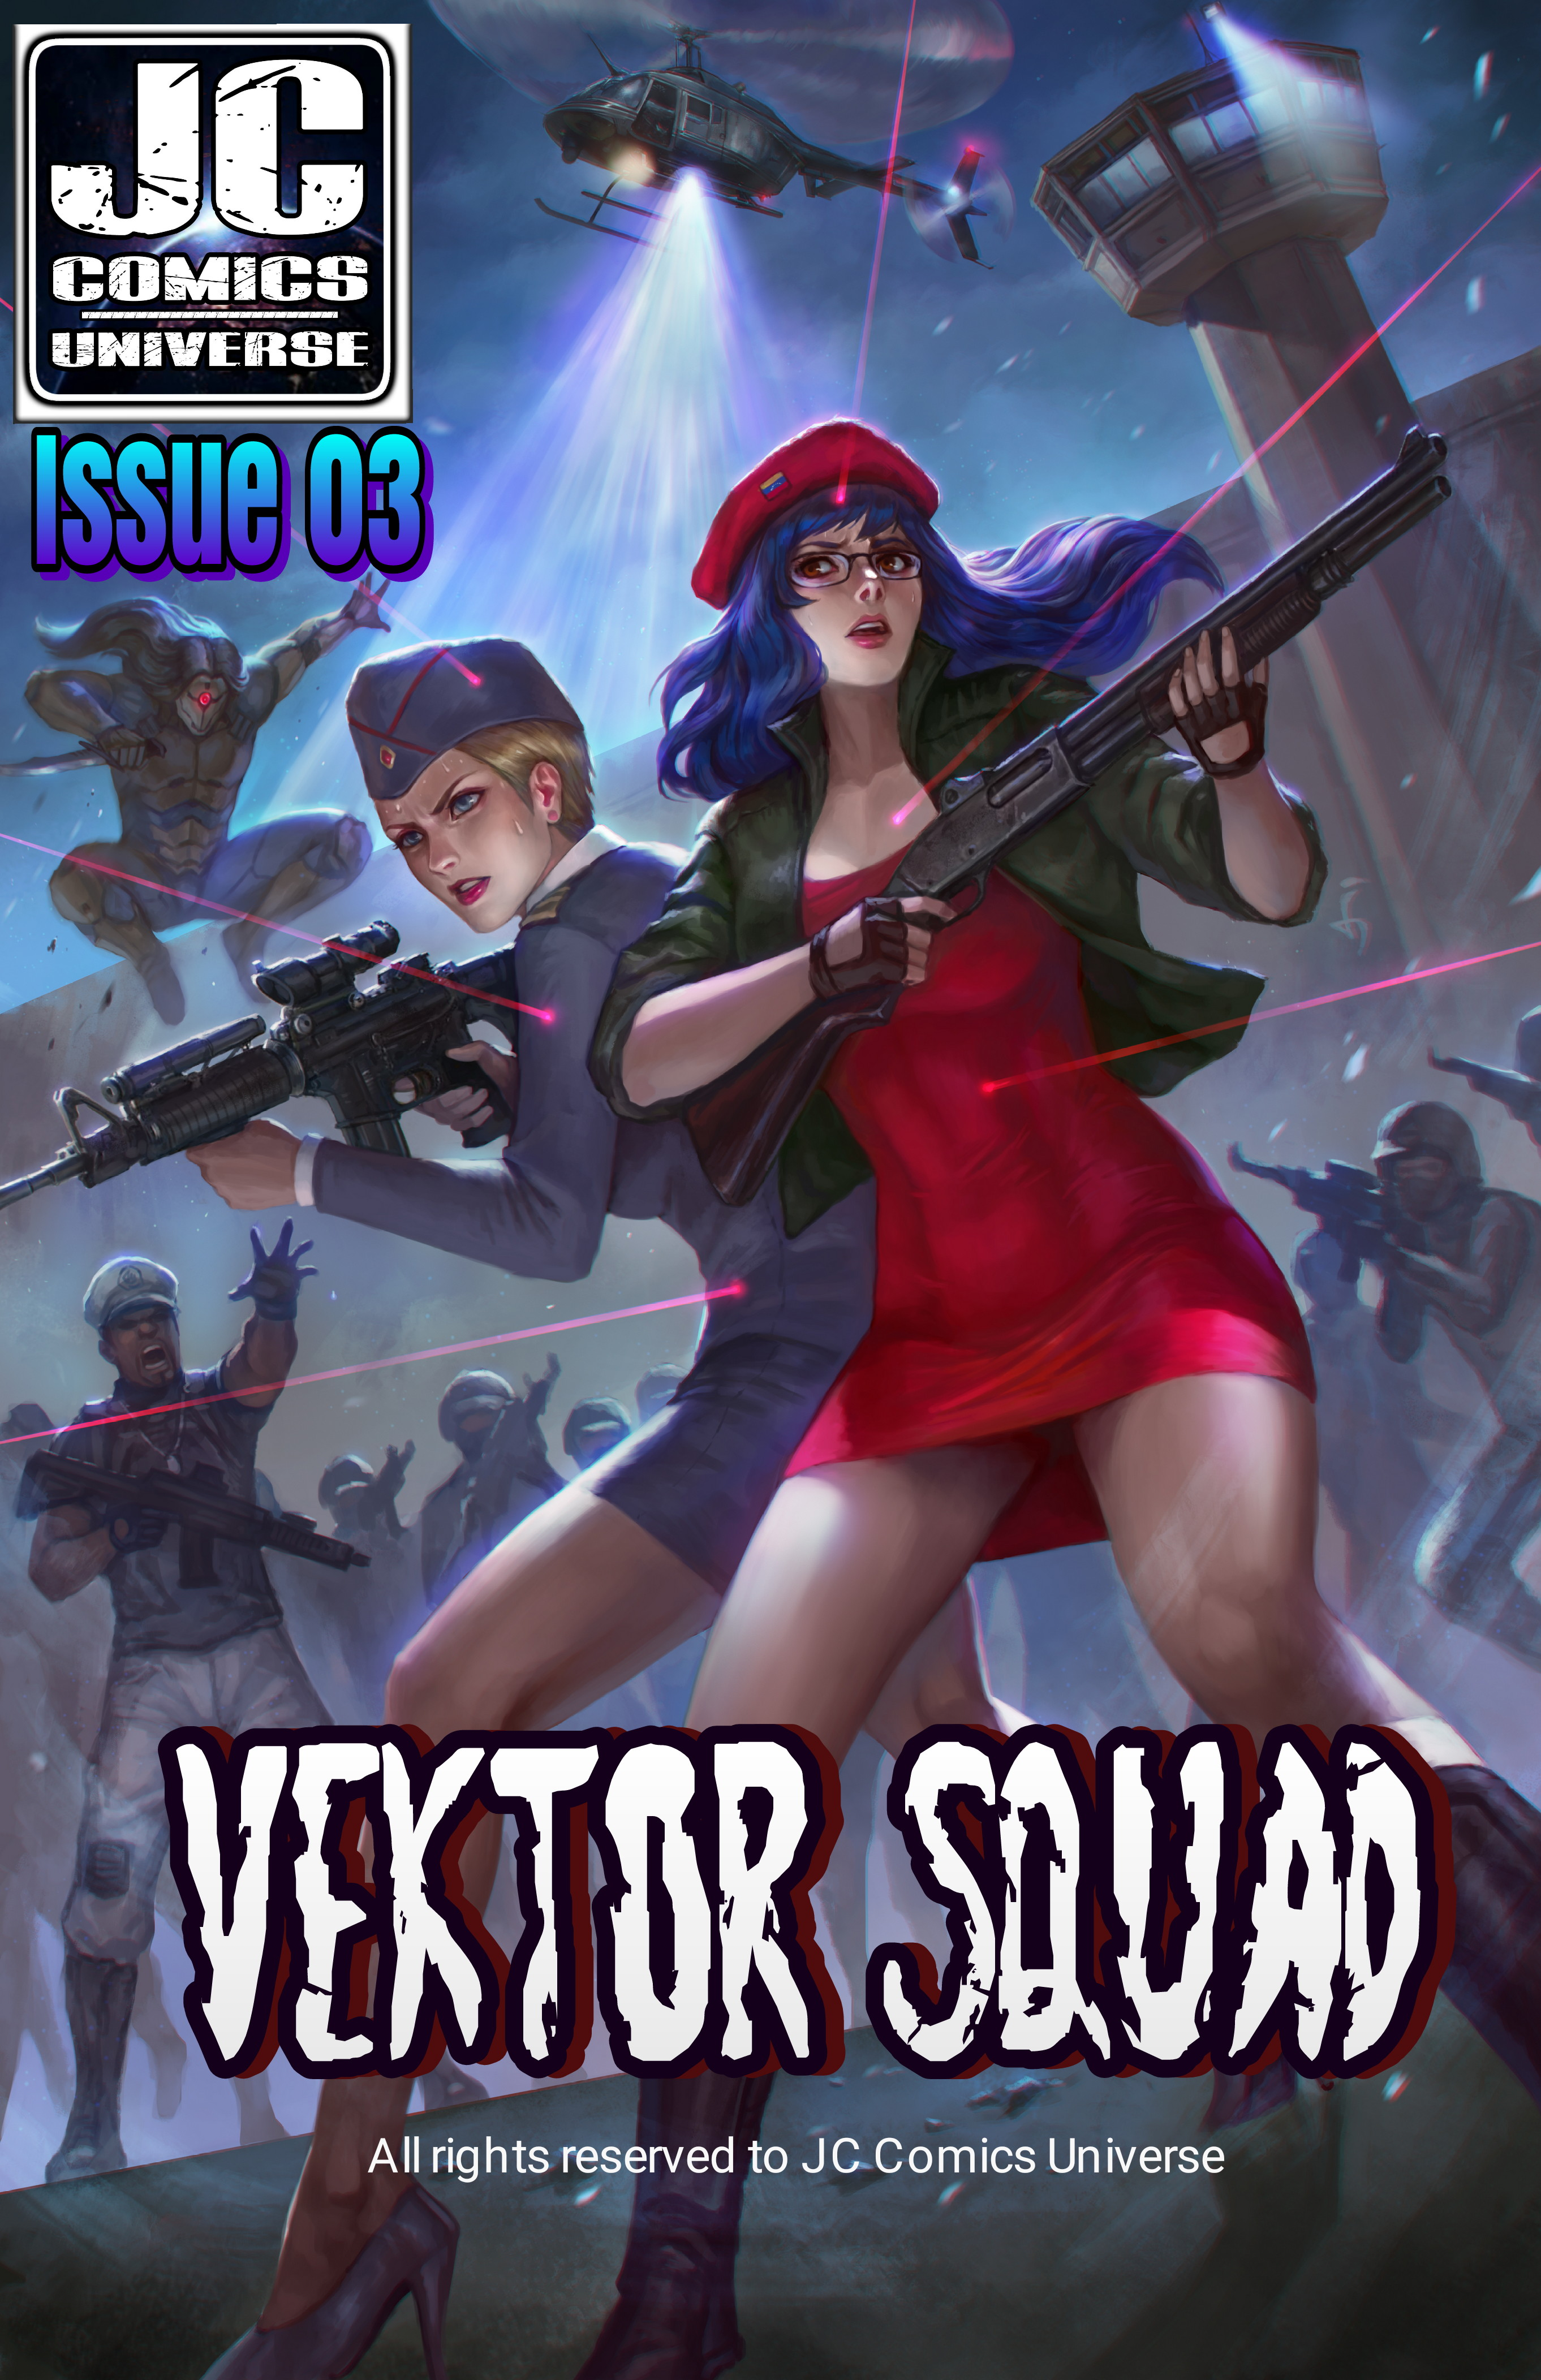 vektor-squad-issue-03-cover